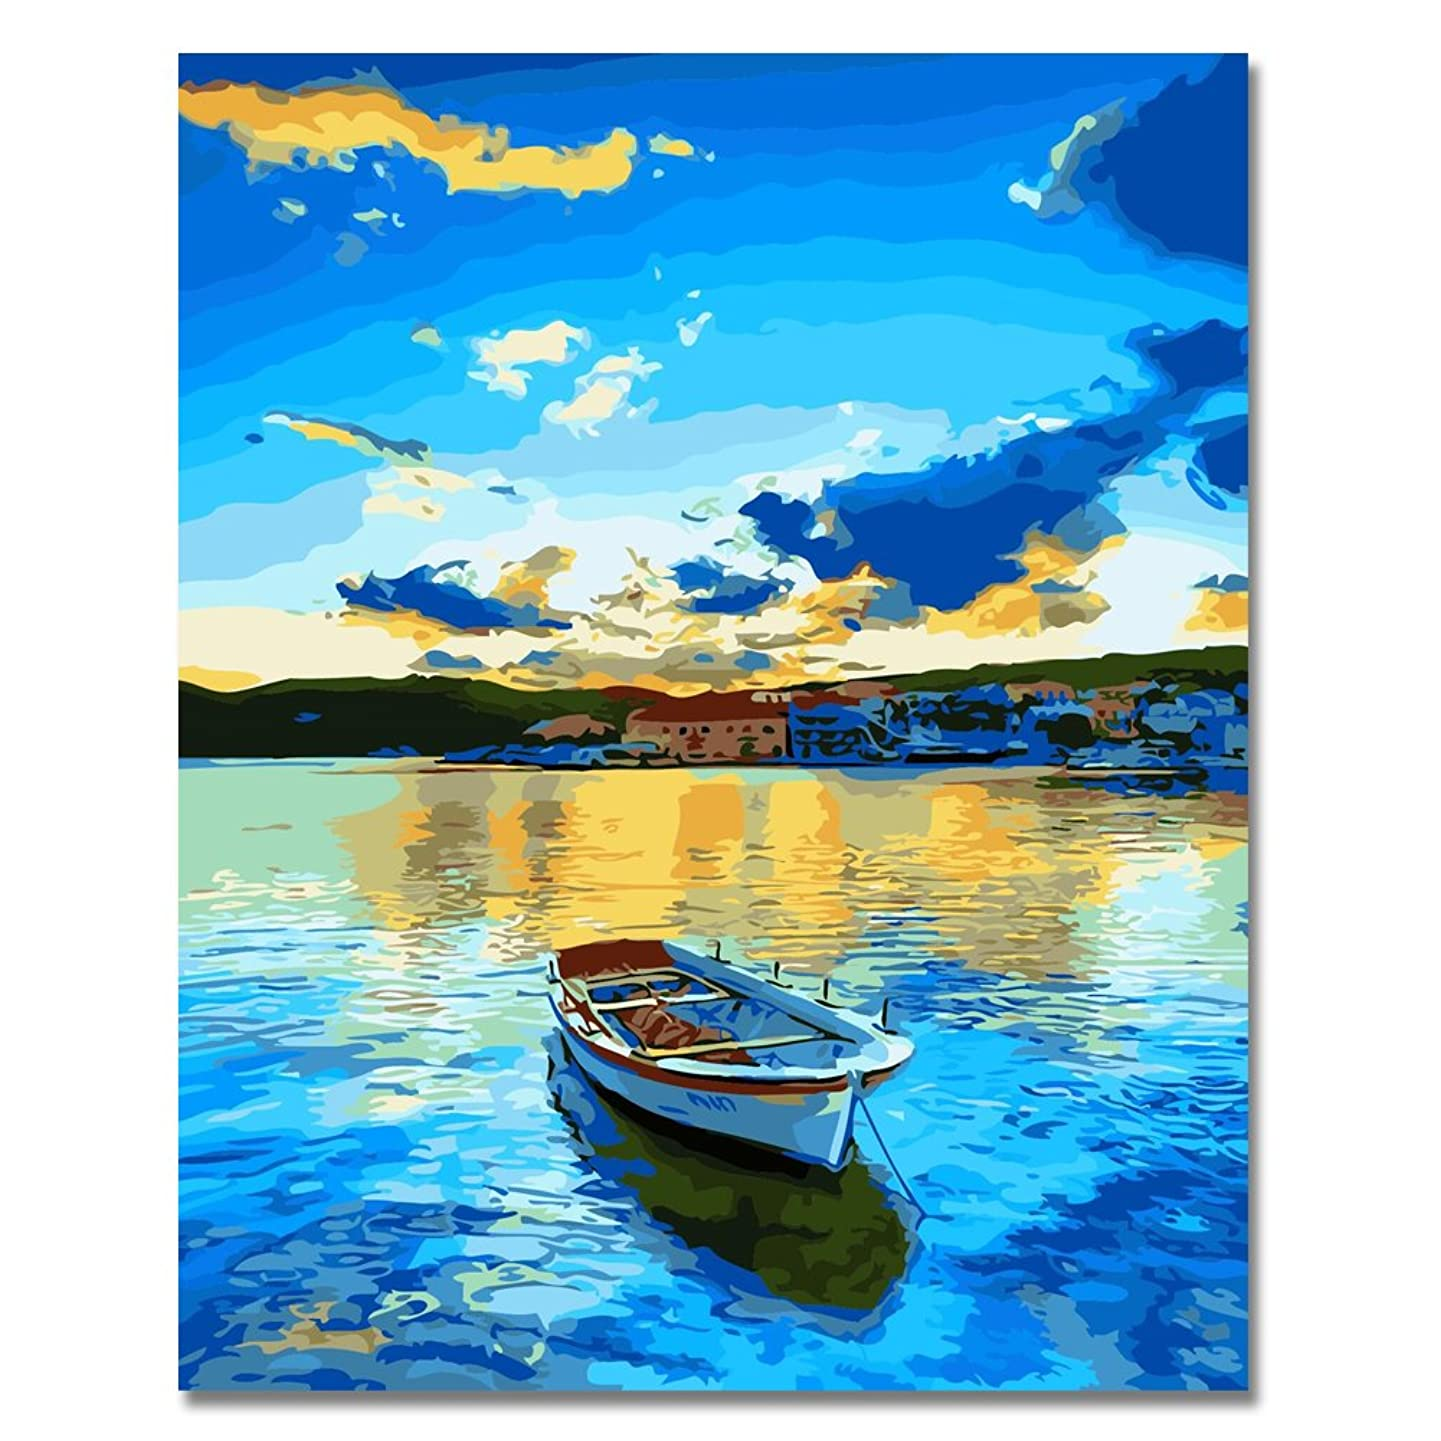 LIUDAO Paint by Numbers Kit for Adults and Kids DIY Oil Painting on Canvas - 16x20 Inch Without Frame (Lake Boat Blue)